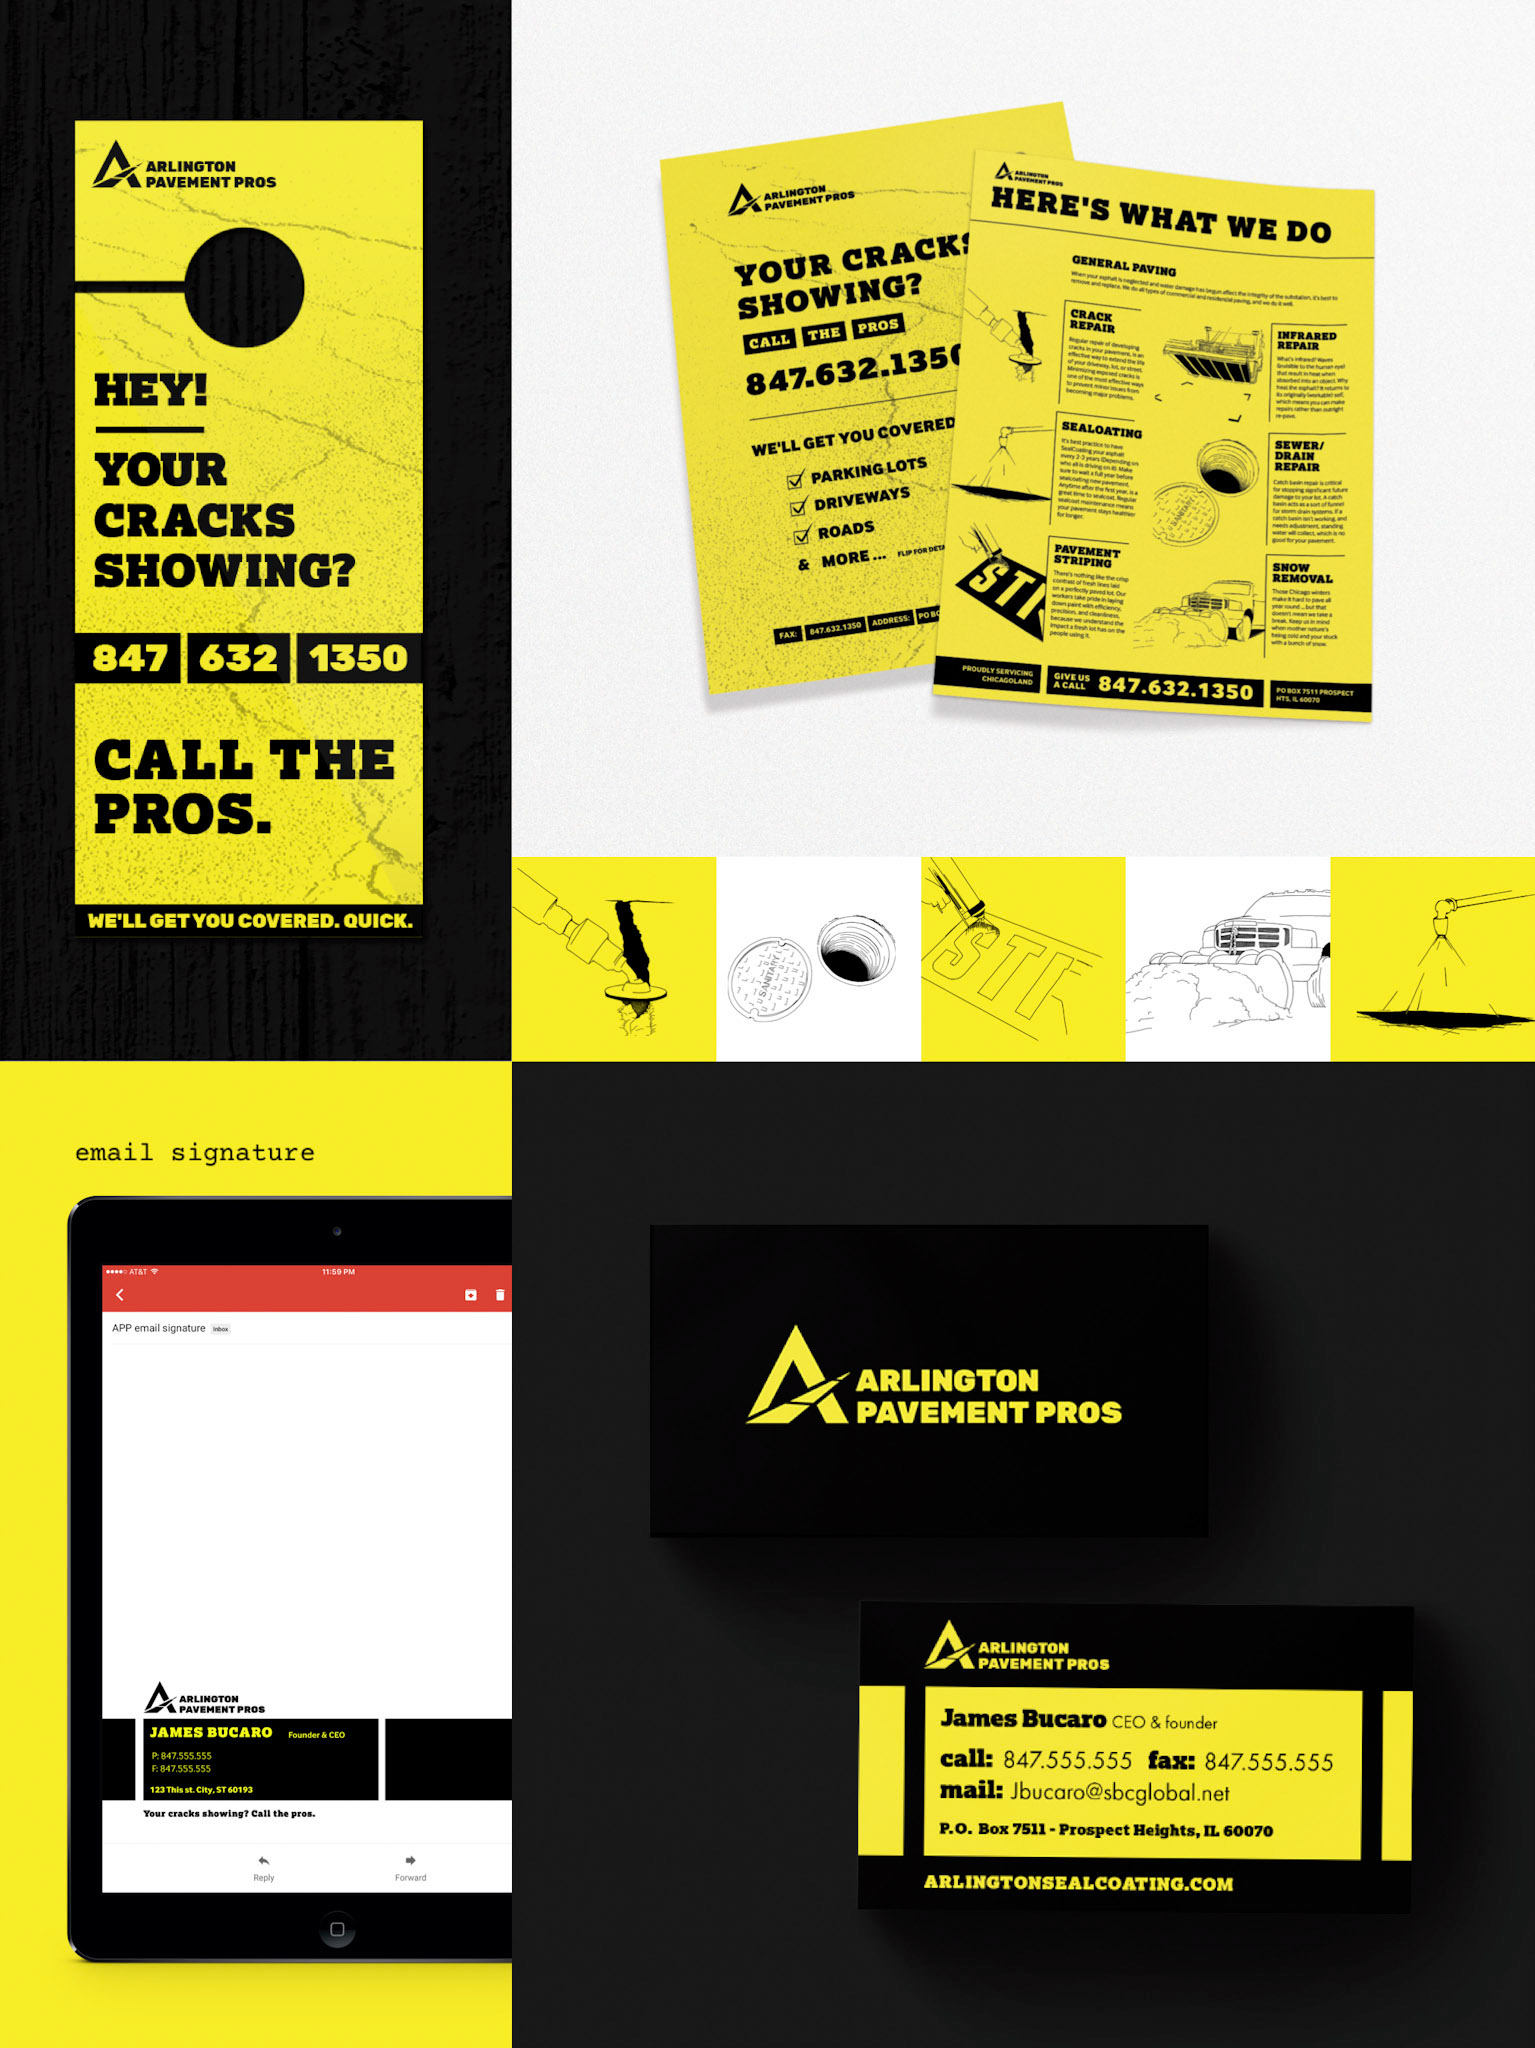 This image shows the brand at a glance. Including front and back sell sheets, door hanger, illustrations of services, email signature, and business cards.